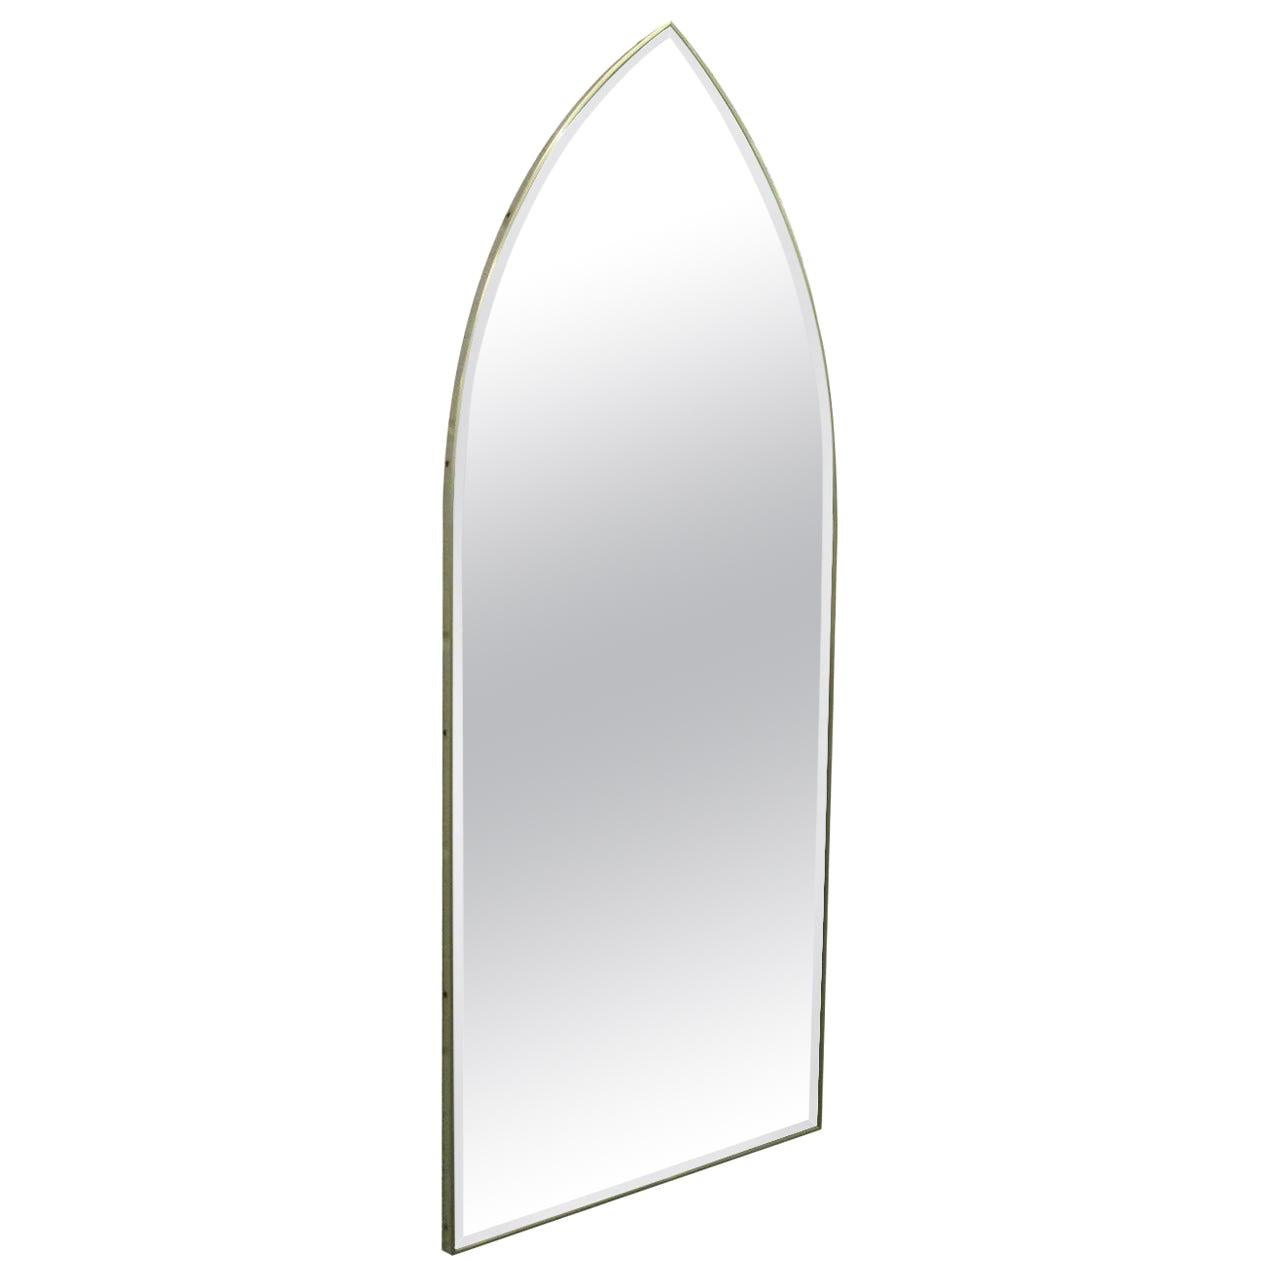 Italian Modernist Arched Mirror with Brass Frame